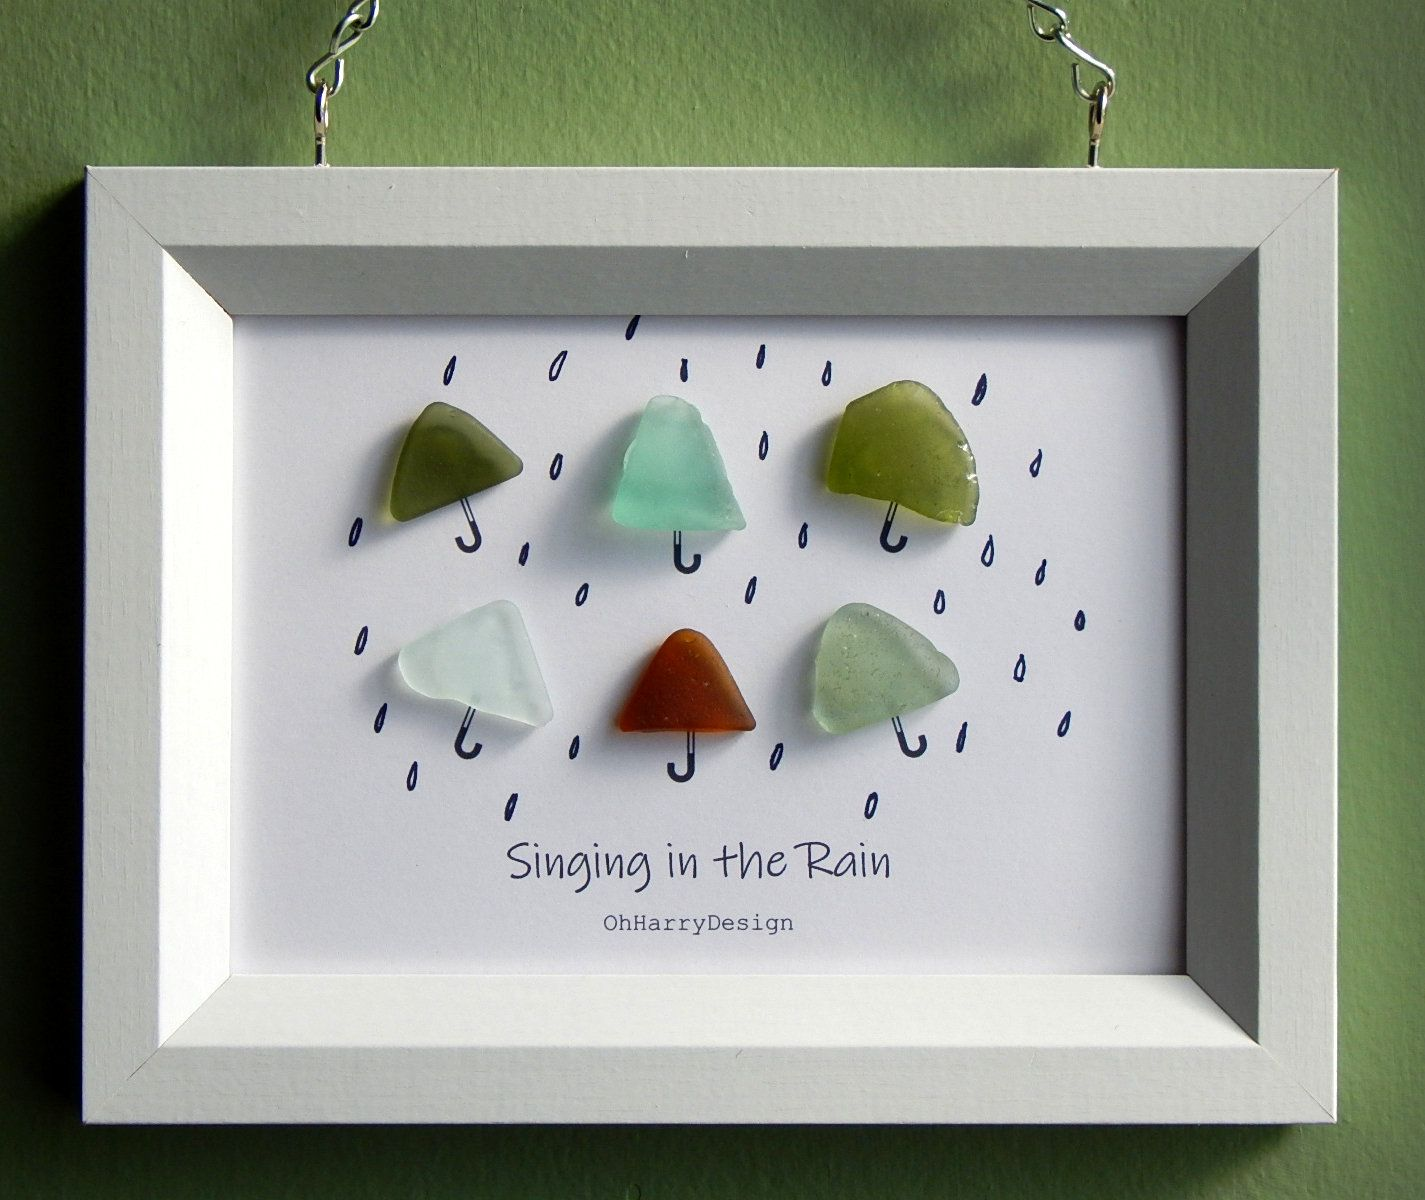 Sea Beach Glass Umbrella Artwork Picture Singing In The Rain By Ohharrydesign On Etsy Sea Glass Art Diy Sea Glass Crafts Sea Glass Art